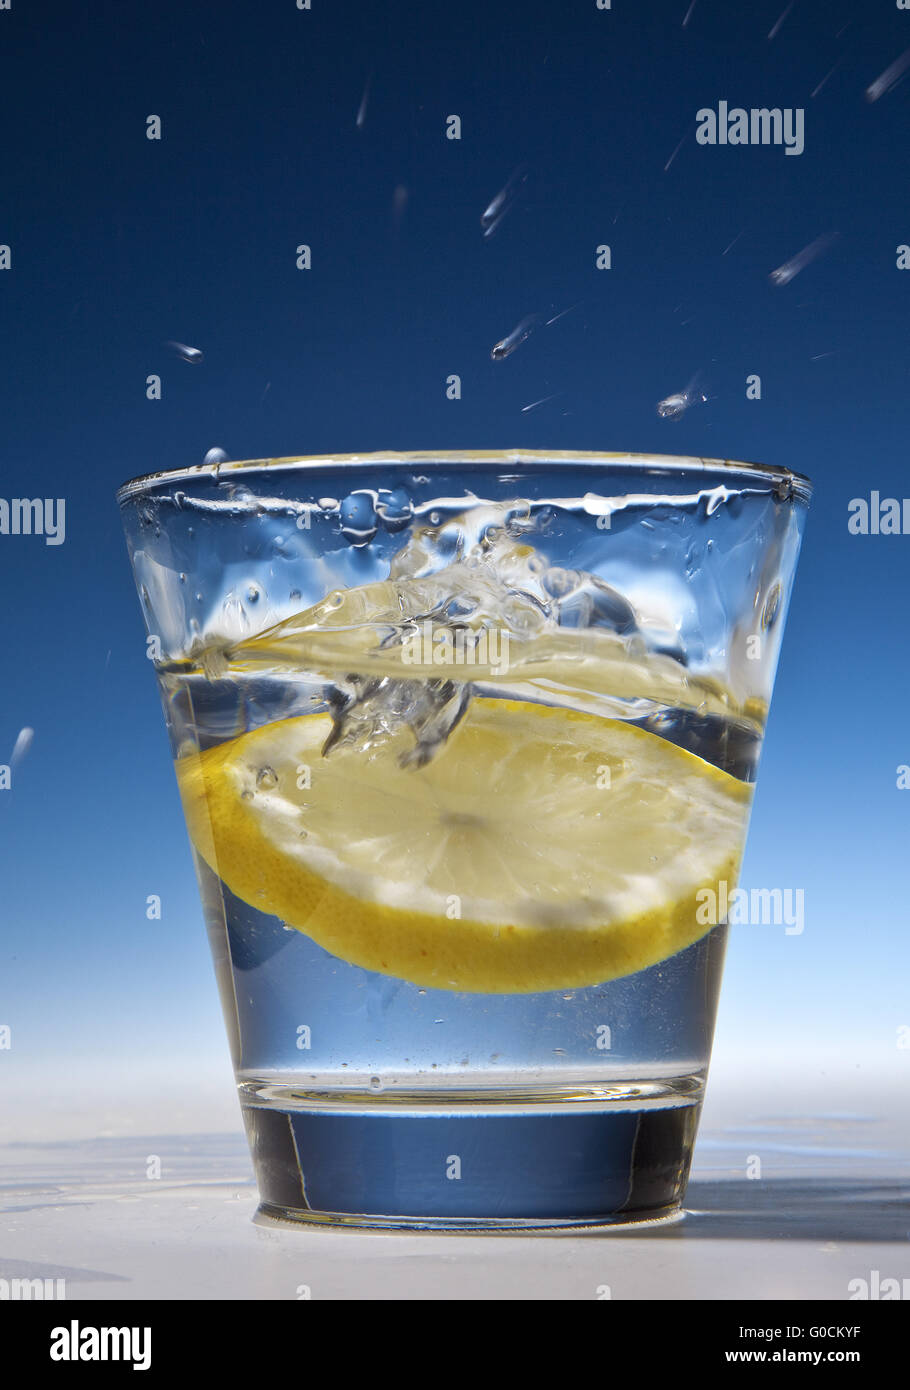 Slice of lemon falling into a glass with water Stock Photo